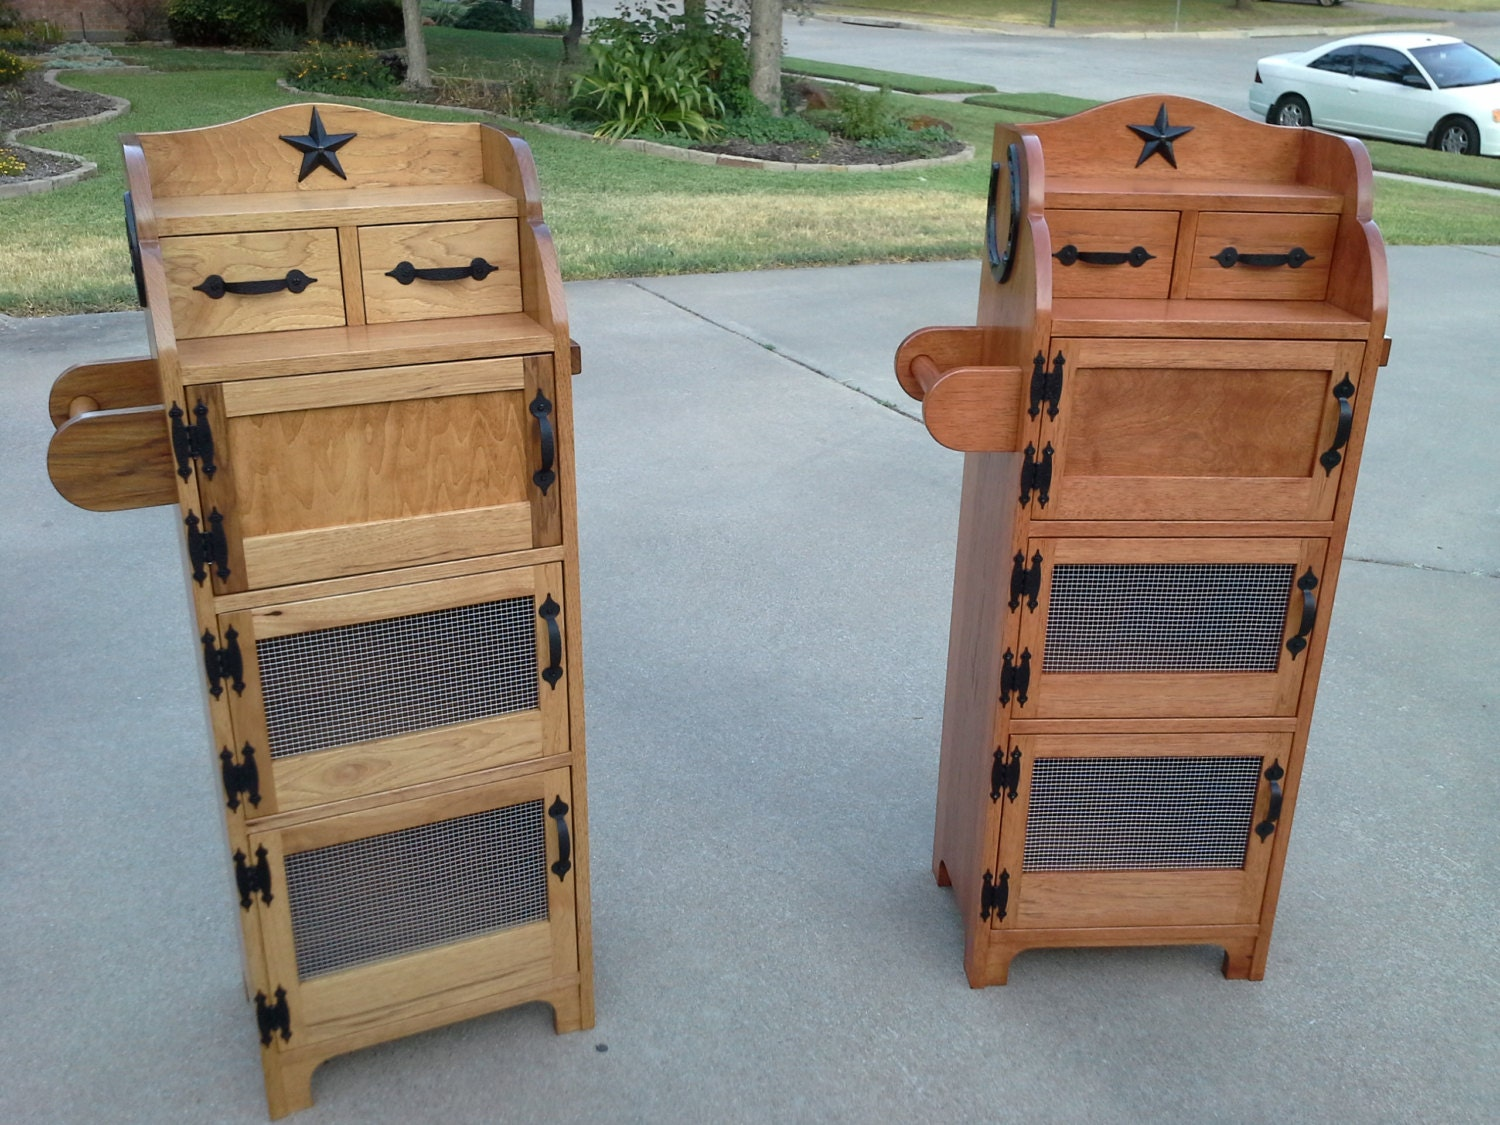 onion potato bins handmade onion potato bins by rbcustomfurniture. Black Bedroom Furniture Sets. Home Design Ideas